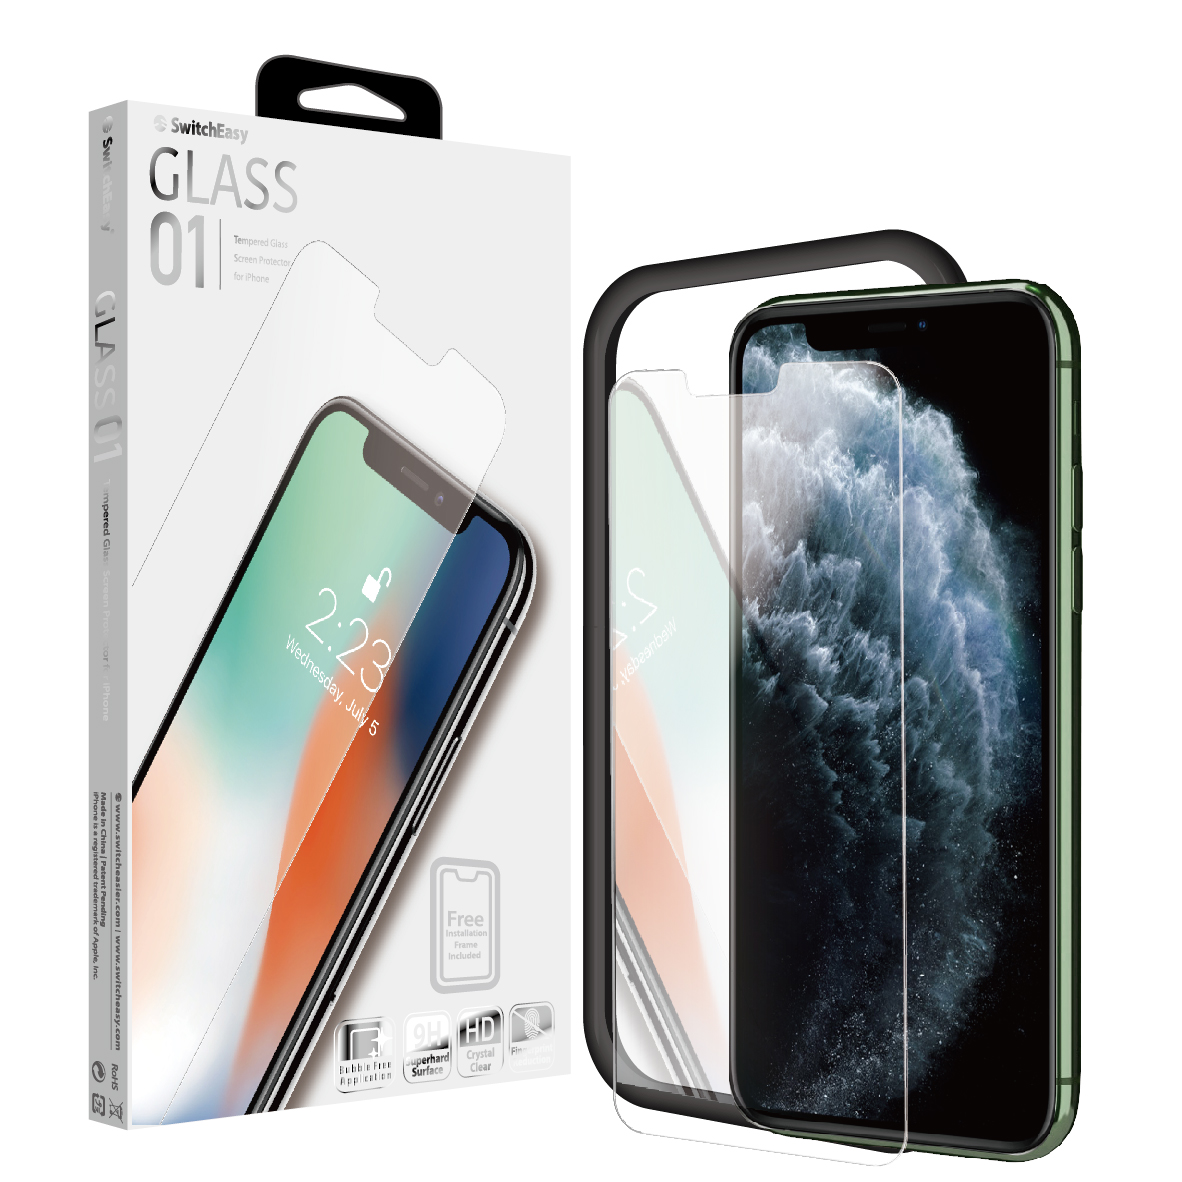 Kính Cường Lực Switcheasy Glass Film for Iphone XS Max/ 11 Pro Max